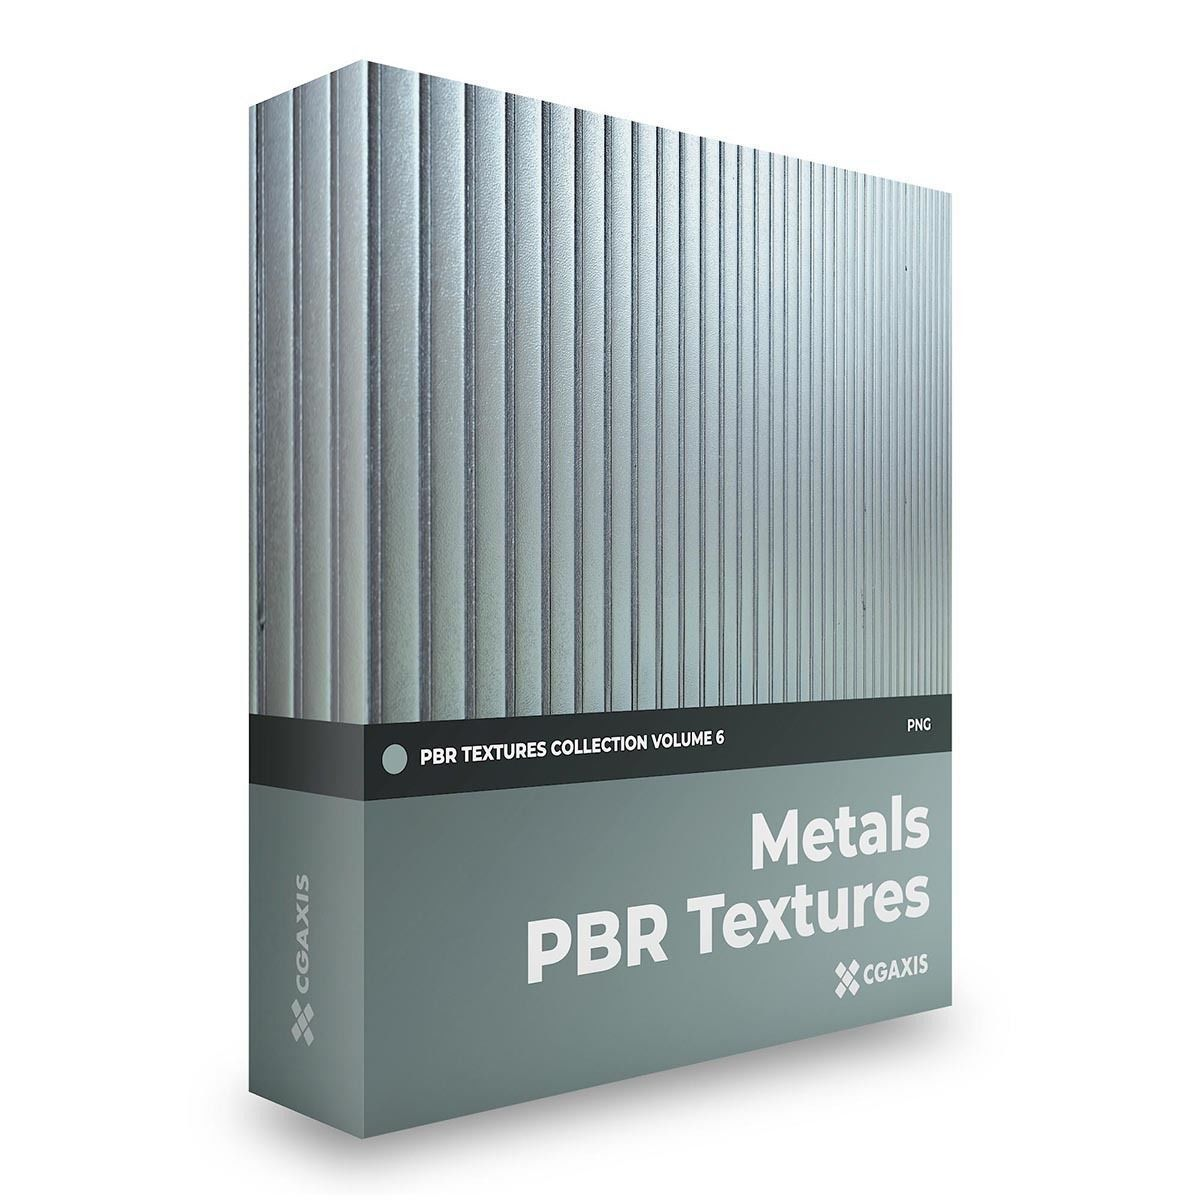 CGAxis Metals PBR Textures Collection Volume 6